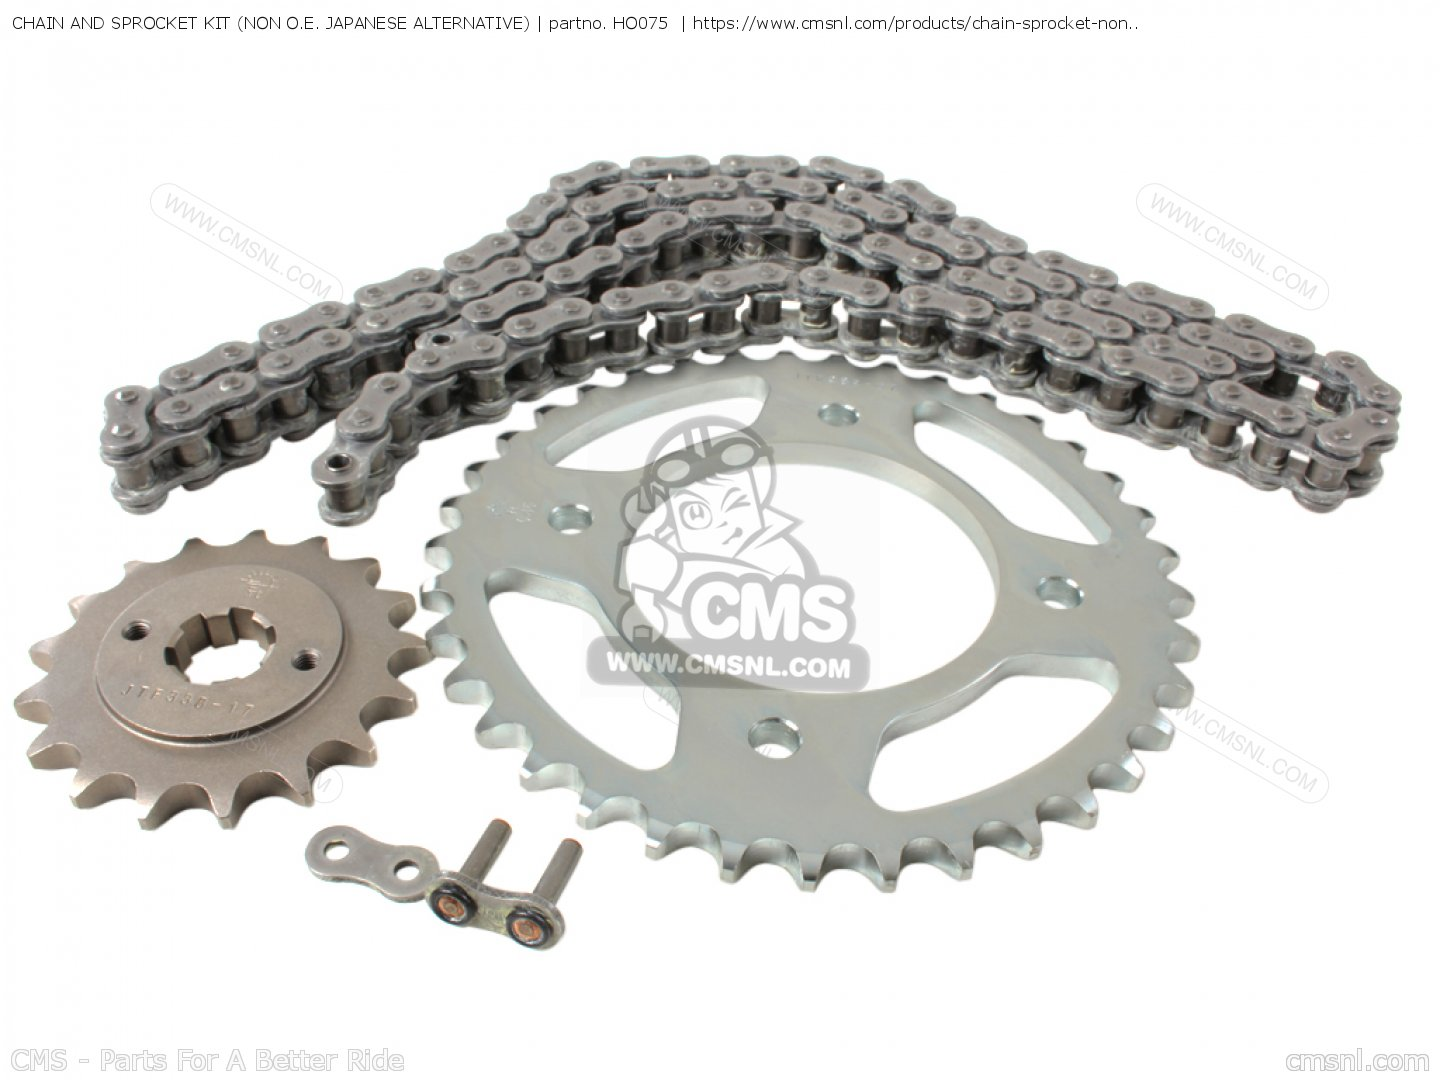 Chain and Sprocket Kit Compatible with Honda CB550 CB550F Super Sport